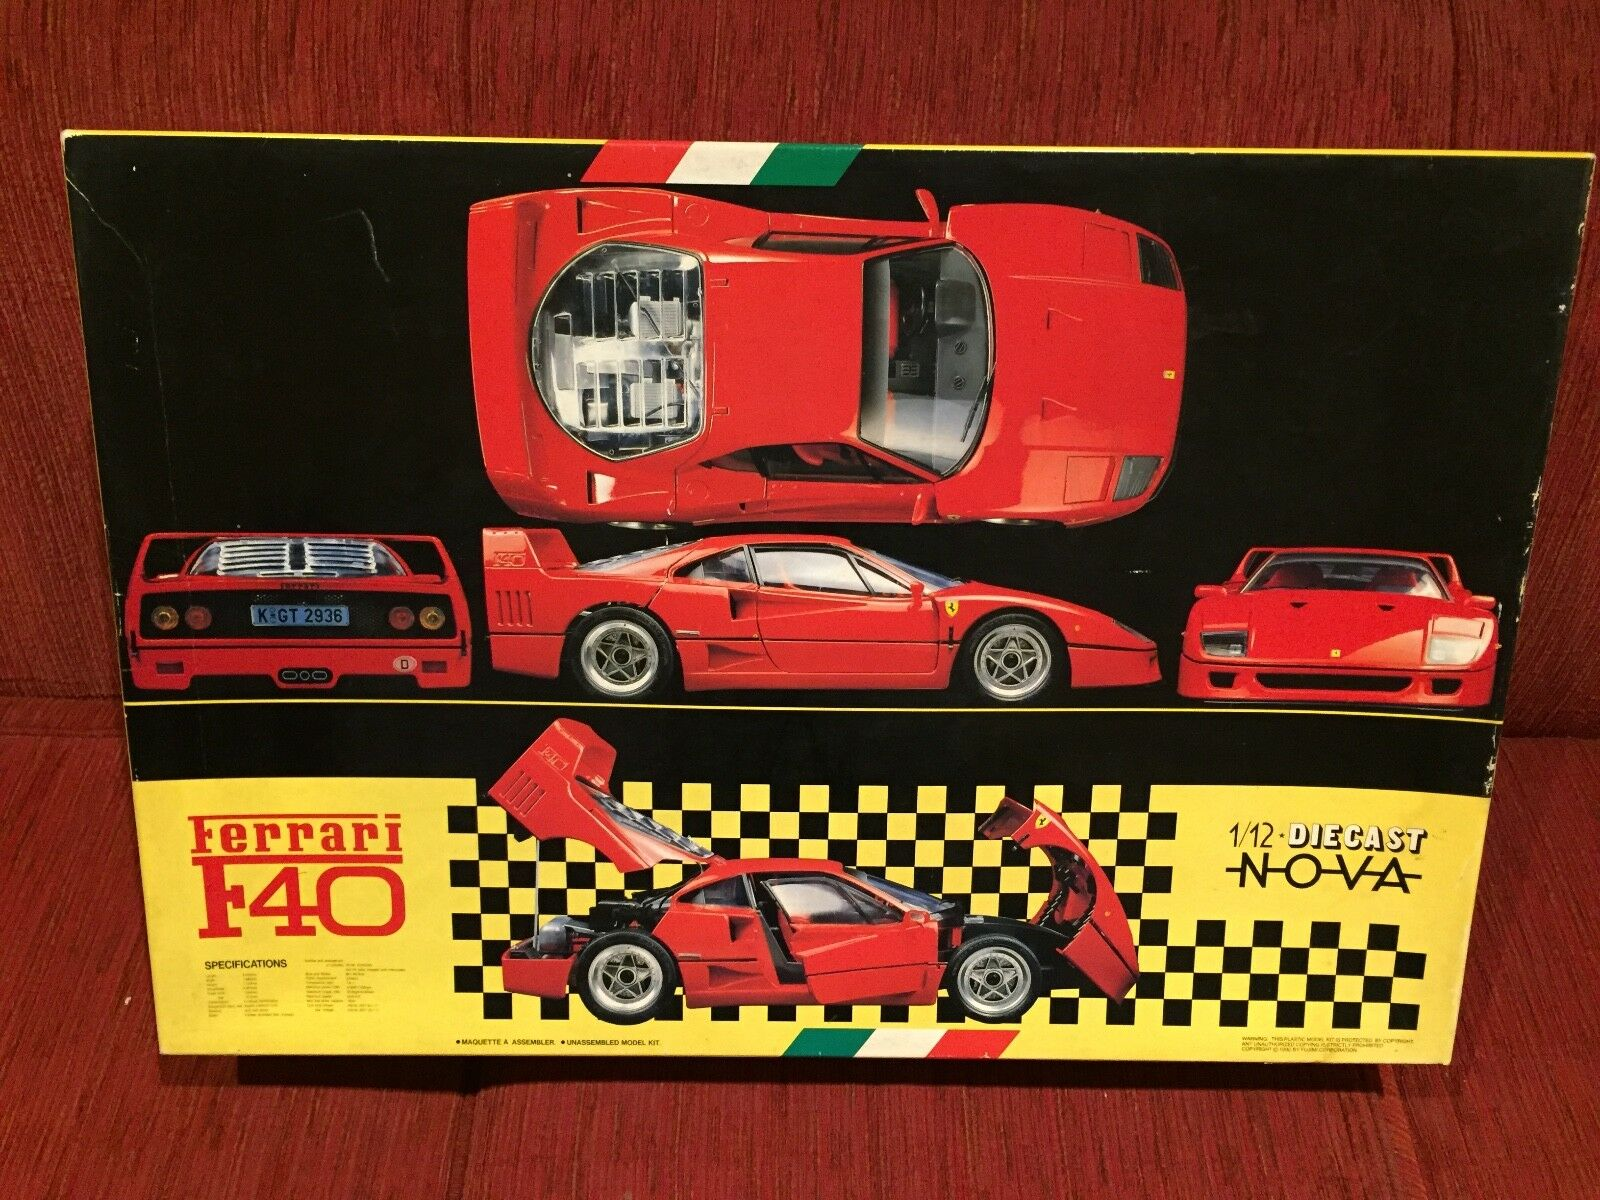 Ferrari F40 Fujimi Model Kit 1 12 RARE New in Box collectable. Die cast NOVA